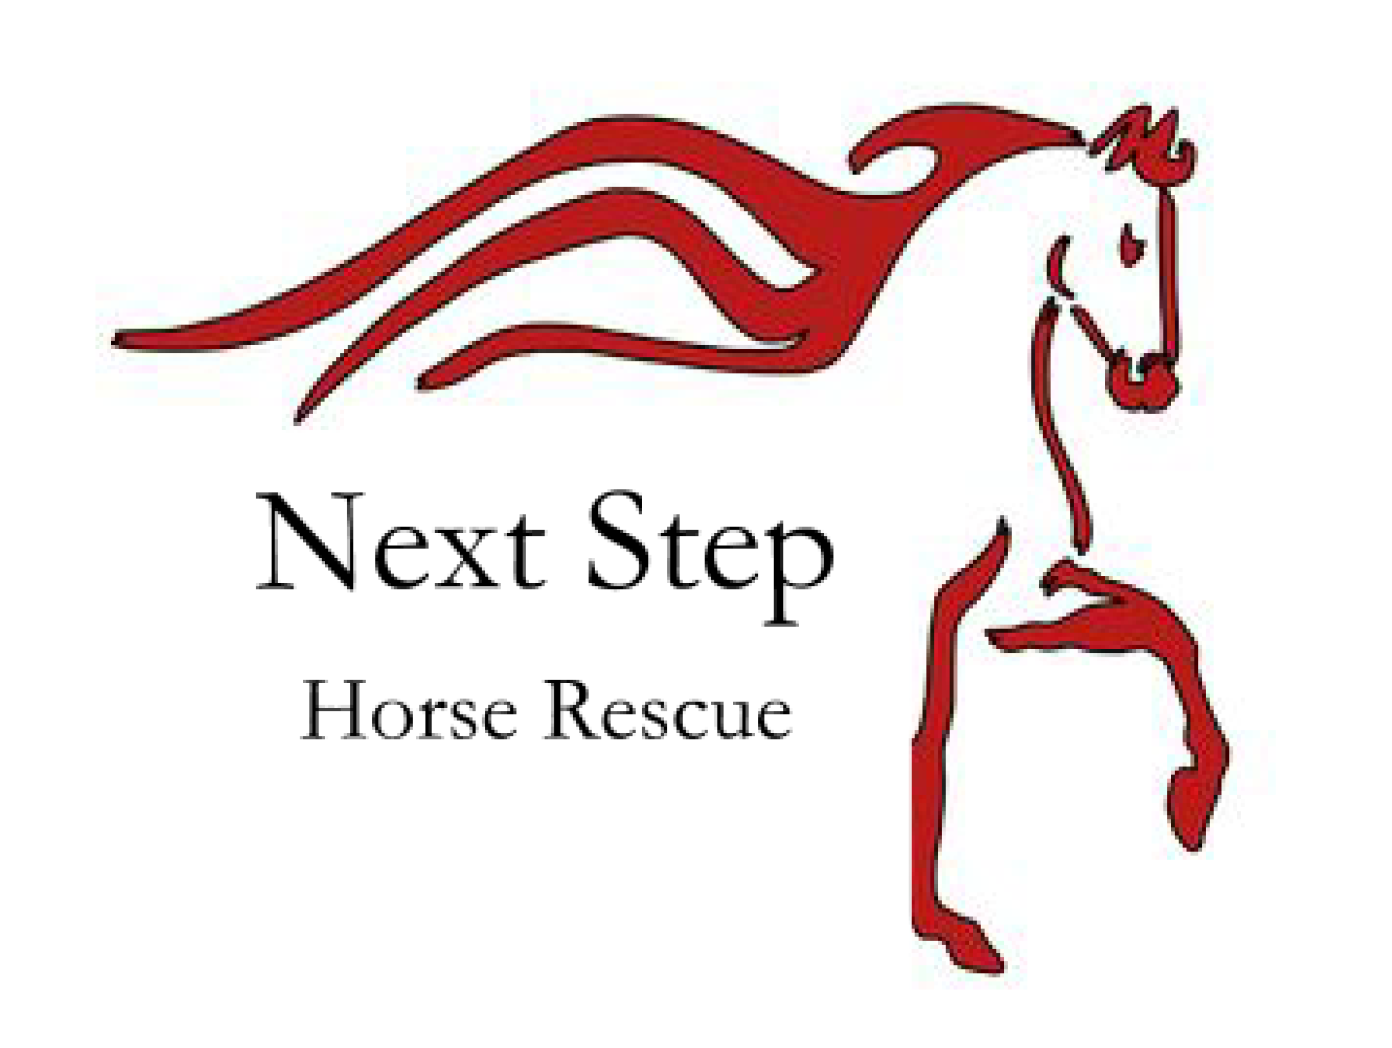 Next Step Horse Rescue